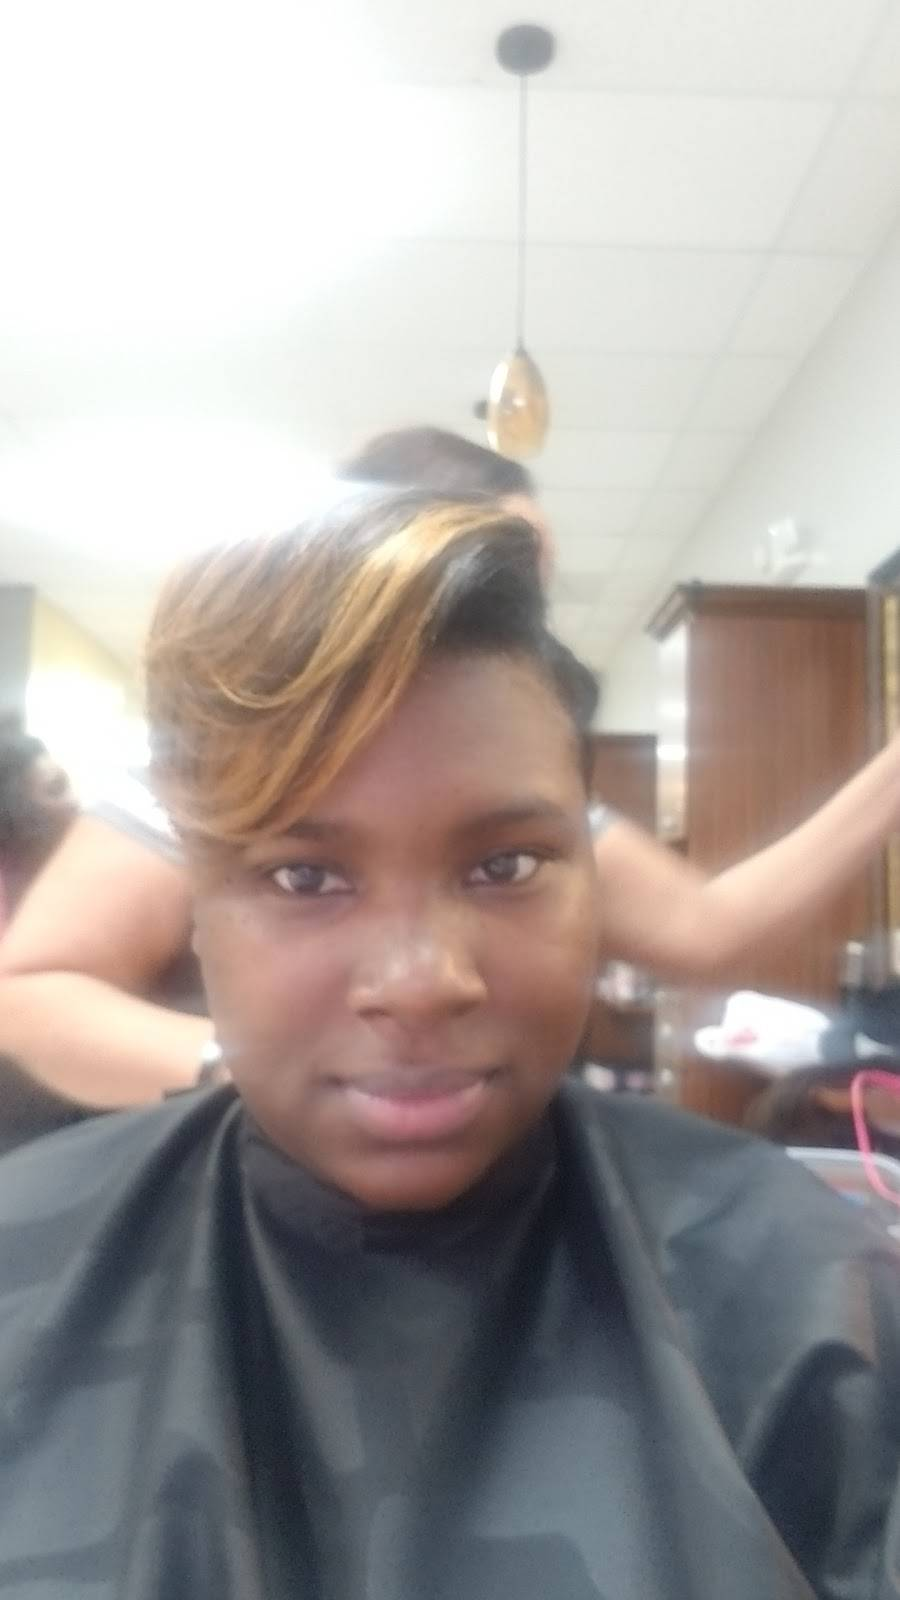 Transformation Hair Gallery - hair care  | Photo 6 of 6 | Address: 11200 E Dr Martin Luther King Jr Blvd, Seffner, FL 33584, USA | Phone: (813) 381-3893